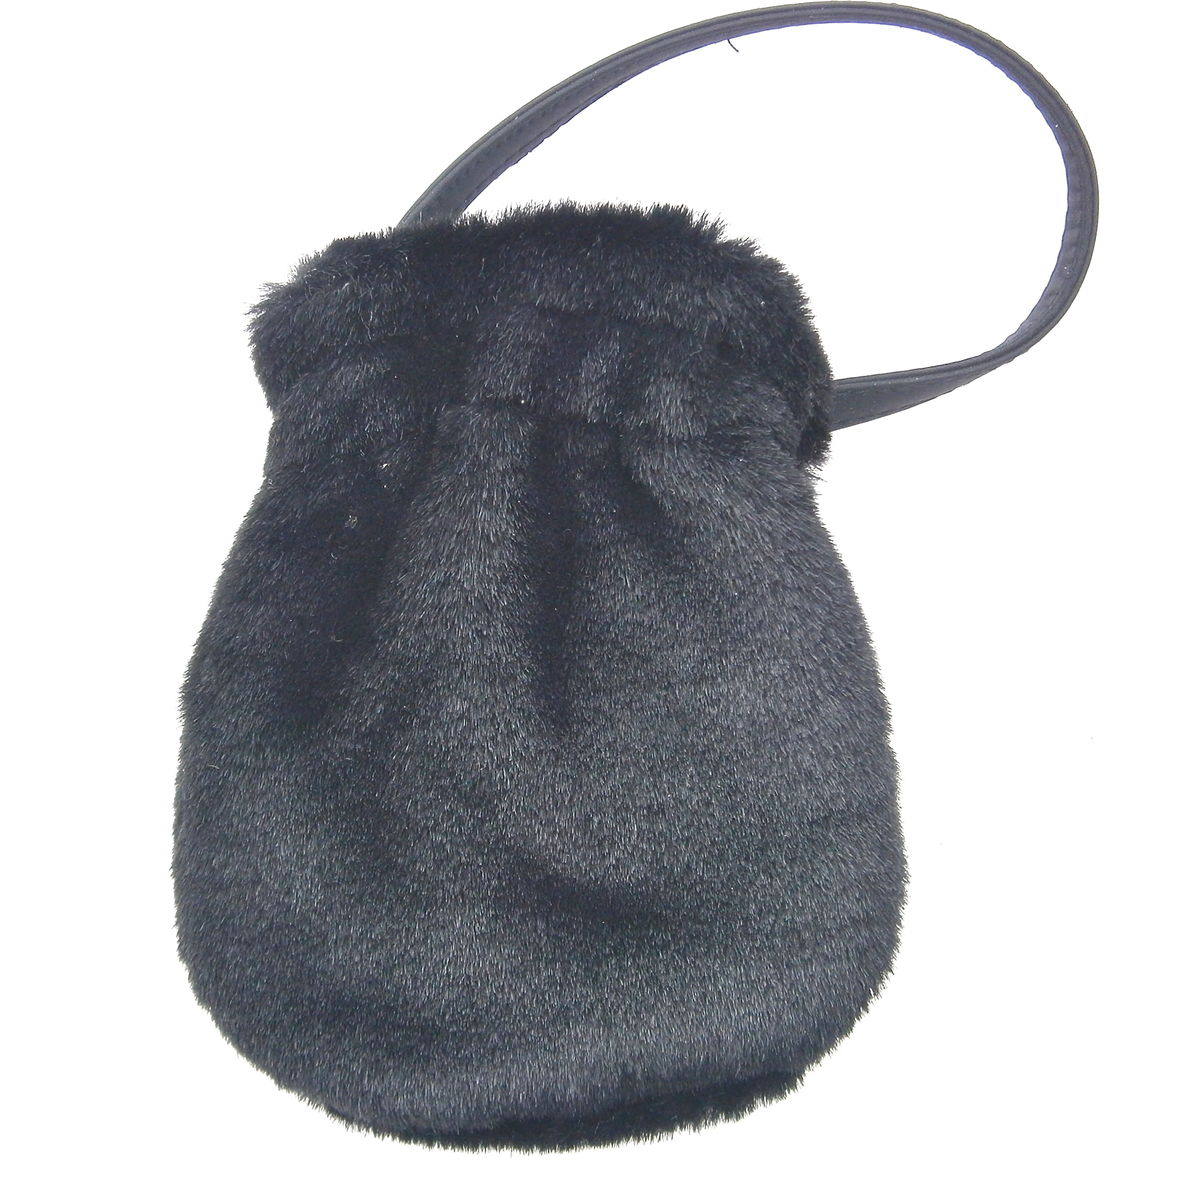 Vintage Black Pom Pom Drawstring Handbag Formal Cosplay Costume Faux Fur Hairy Compact Wristlet Pouch Prom Small Formal Evening Purse Wallet - product images  of